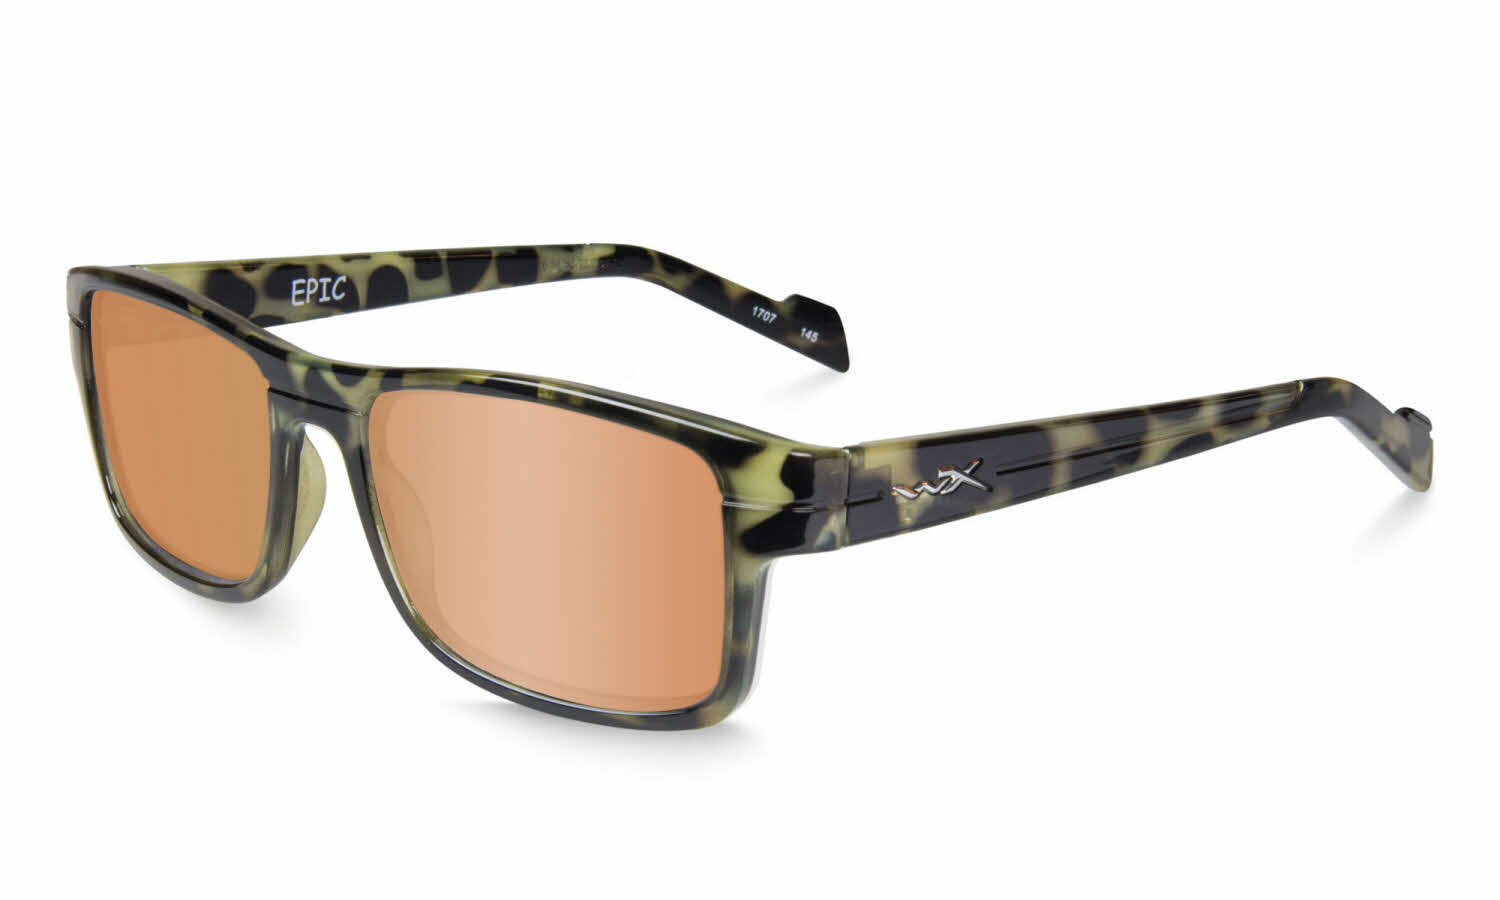 Wiley X WorkSight WX Epic Prescription Sunglasses